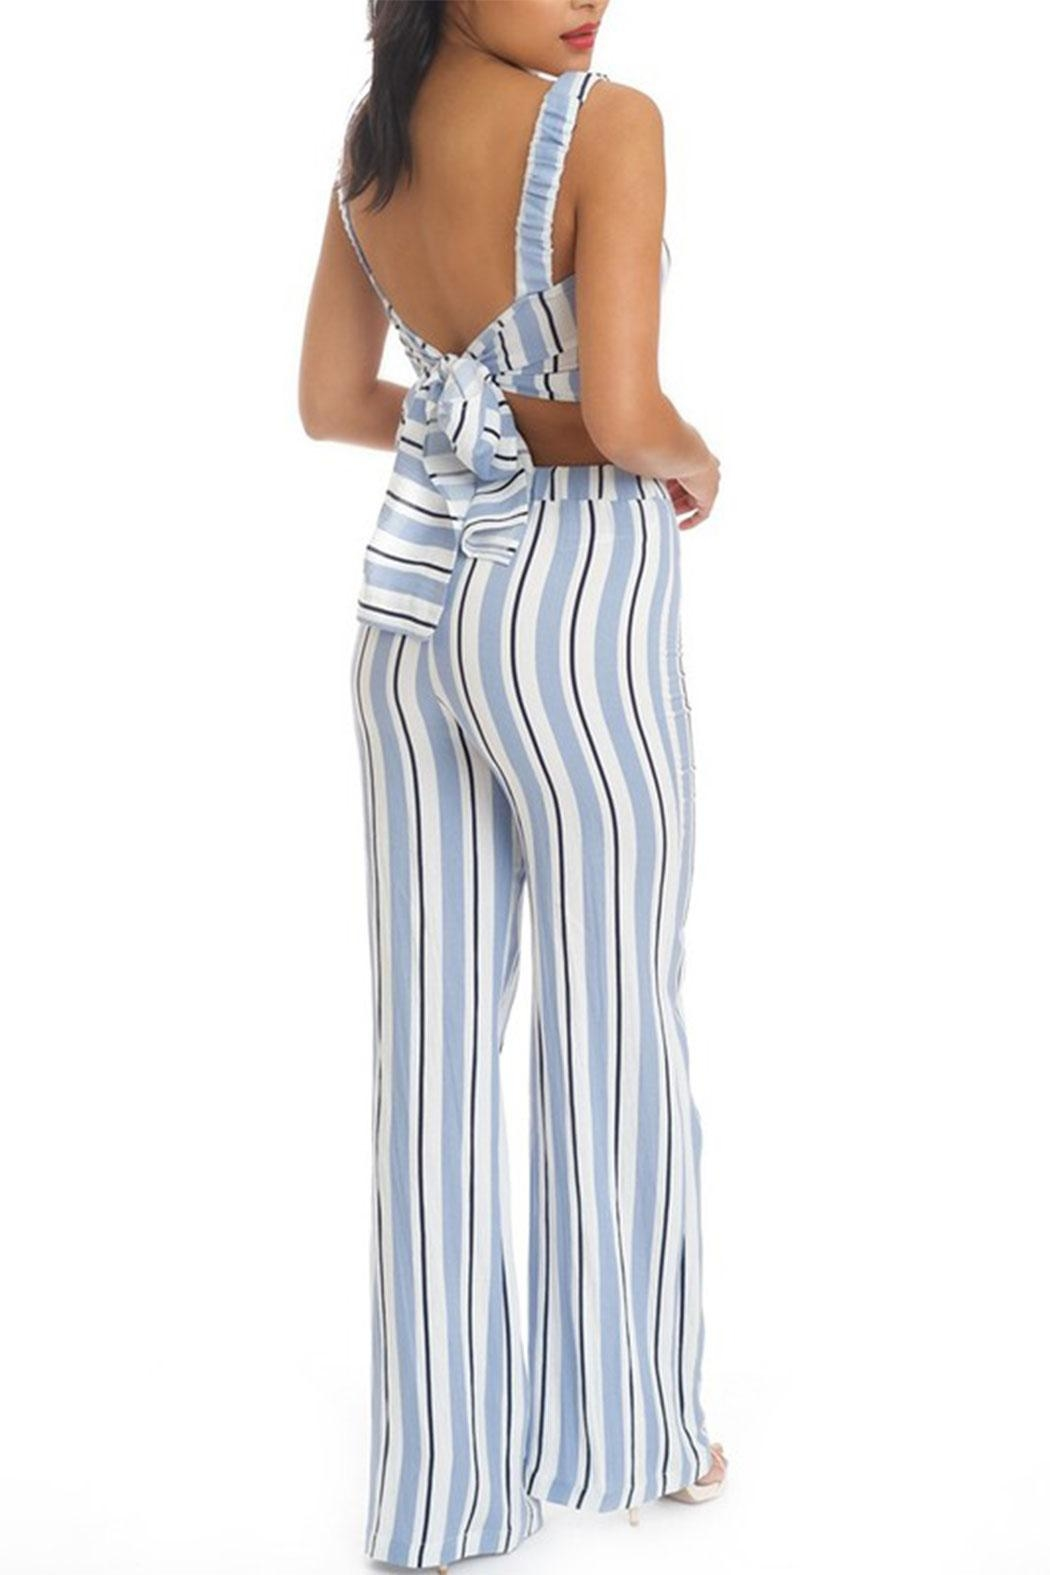 luxxel Stripe Pant Set - Front Full Image